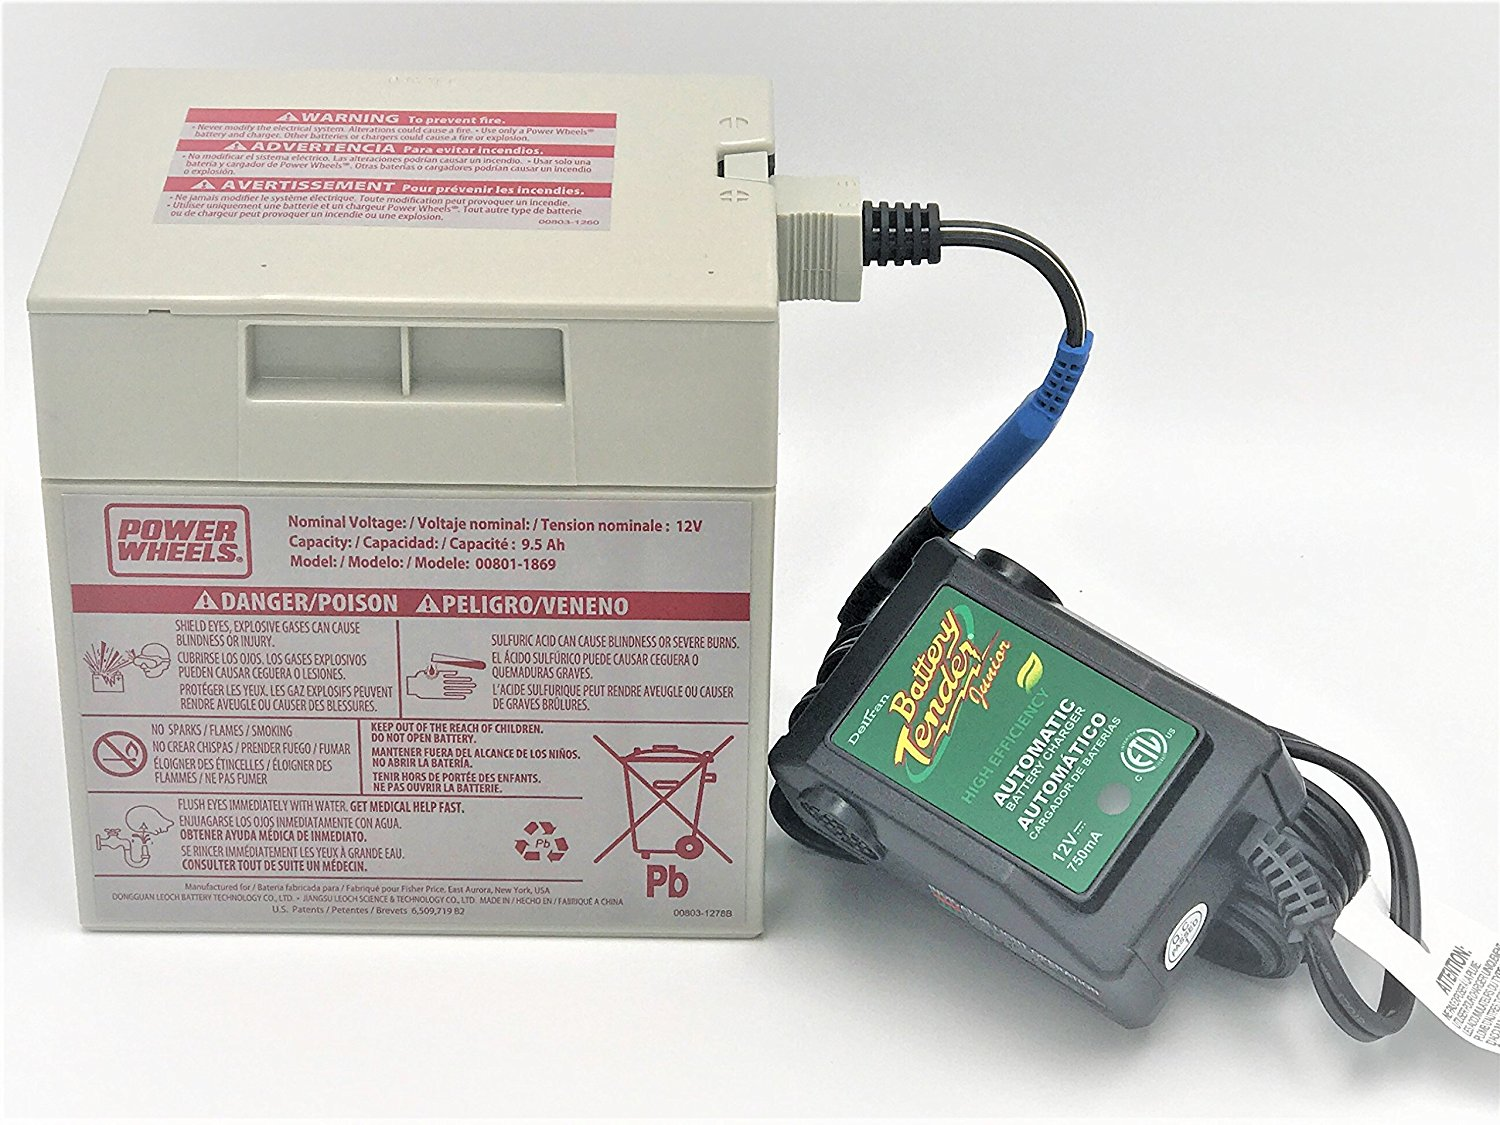 power wheels gray 12 volt battery 00801 0638 and automatic battery rh walmart com Power Wheels 12V Battery Replacement power wheels 12v battery harness